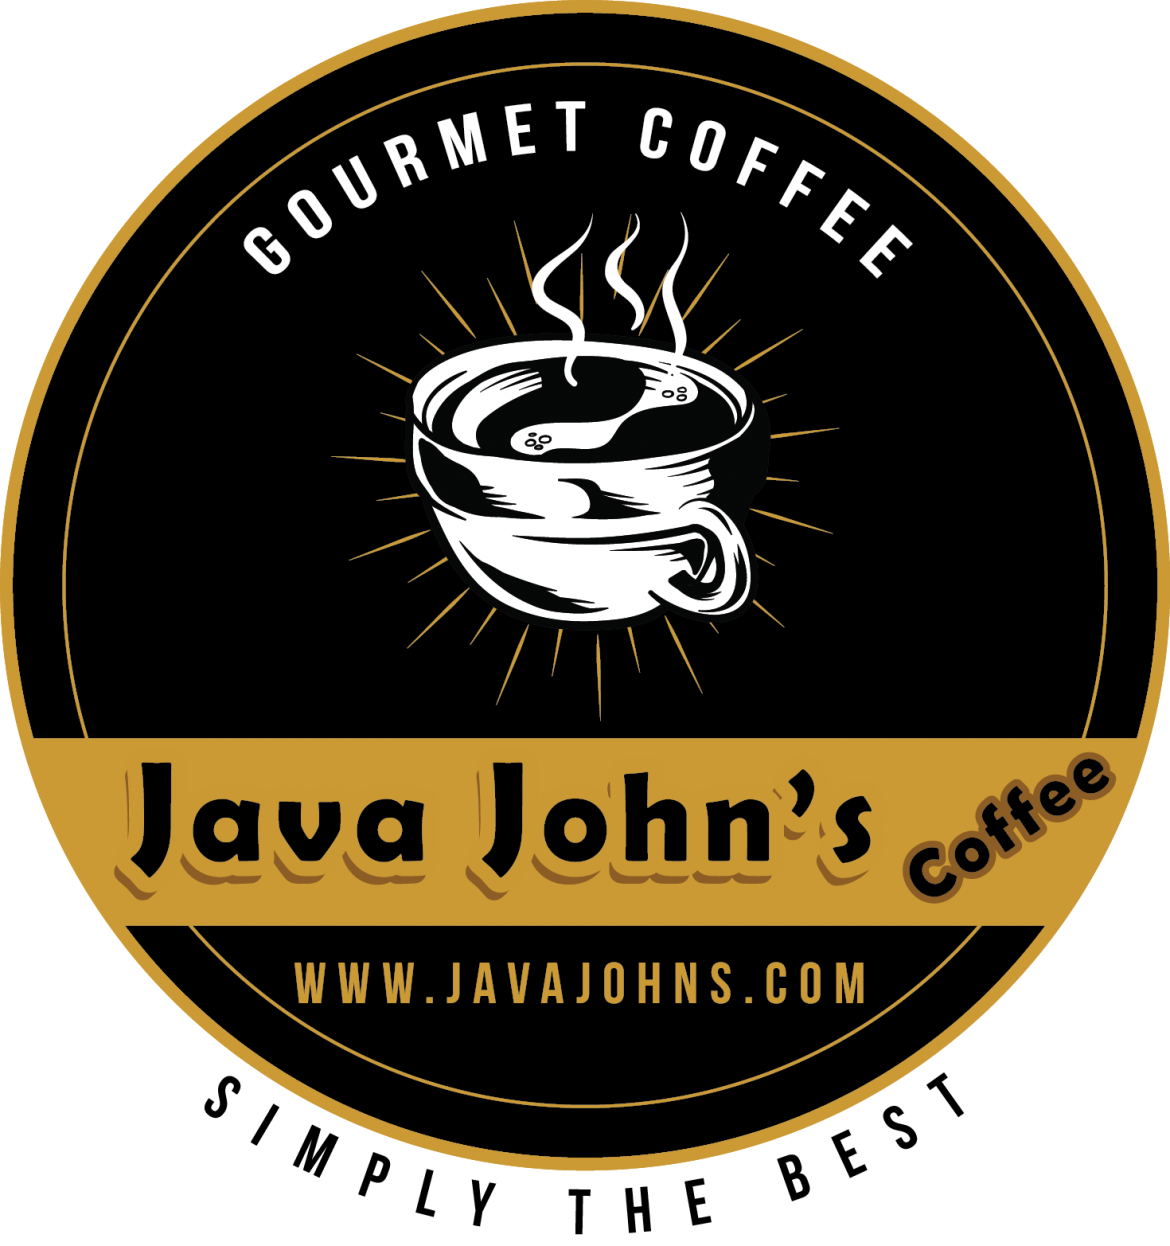 Java-Johns-Coffee-RD-HR-PNG-1.png